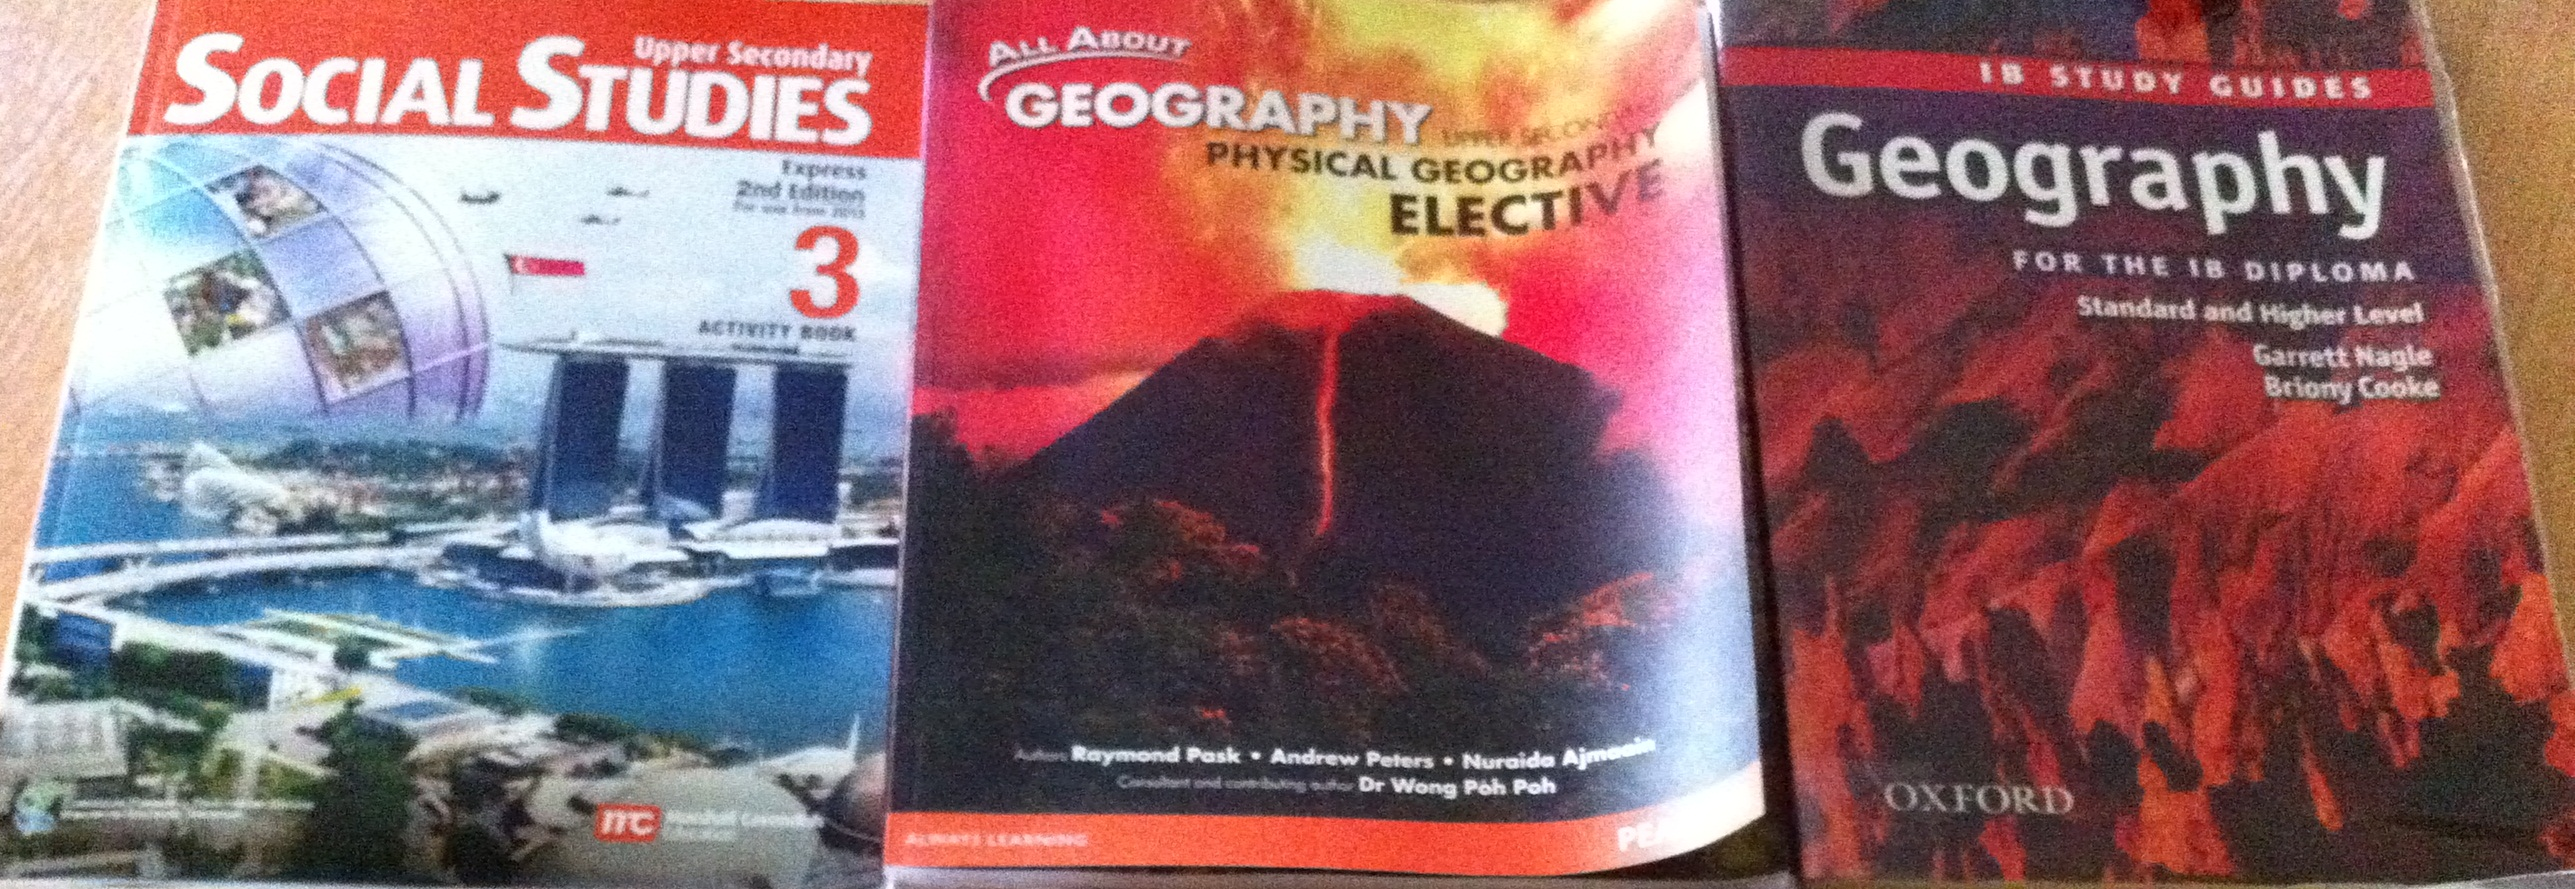 The new Geography and Social Studies Syllabus are covered